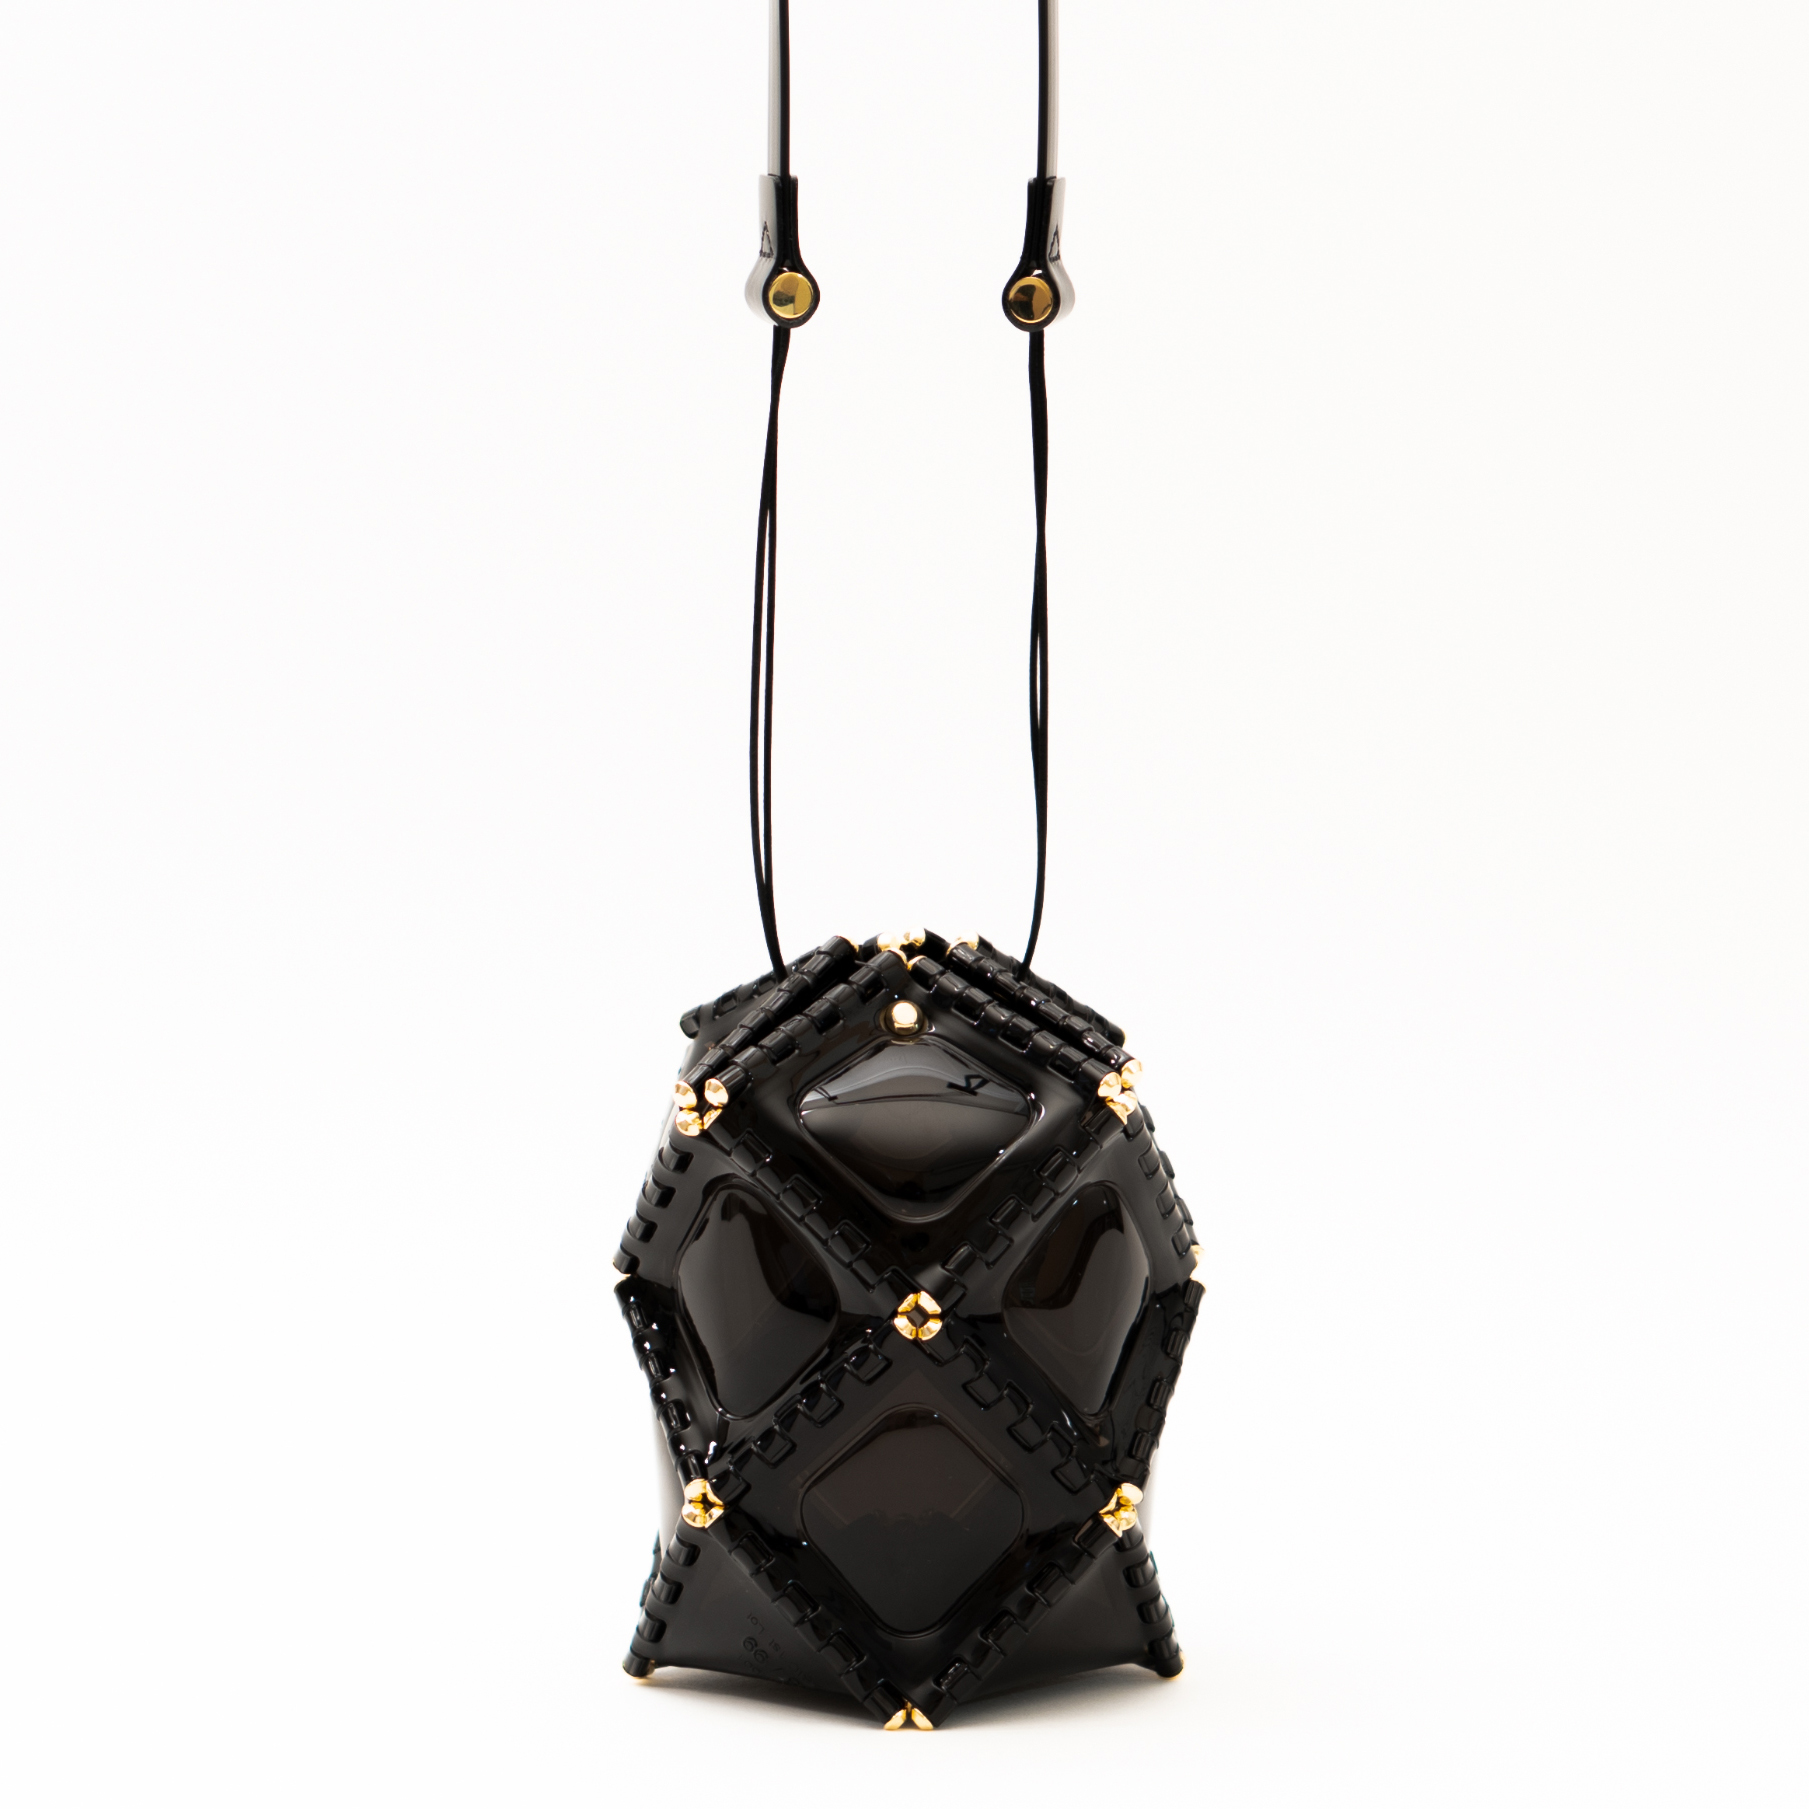 ASTERISK BLACK BLACK - GOLD Small(W12×H17×D12cm)¥35,000